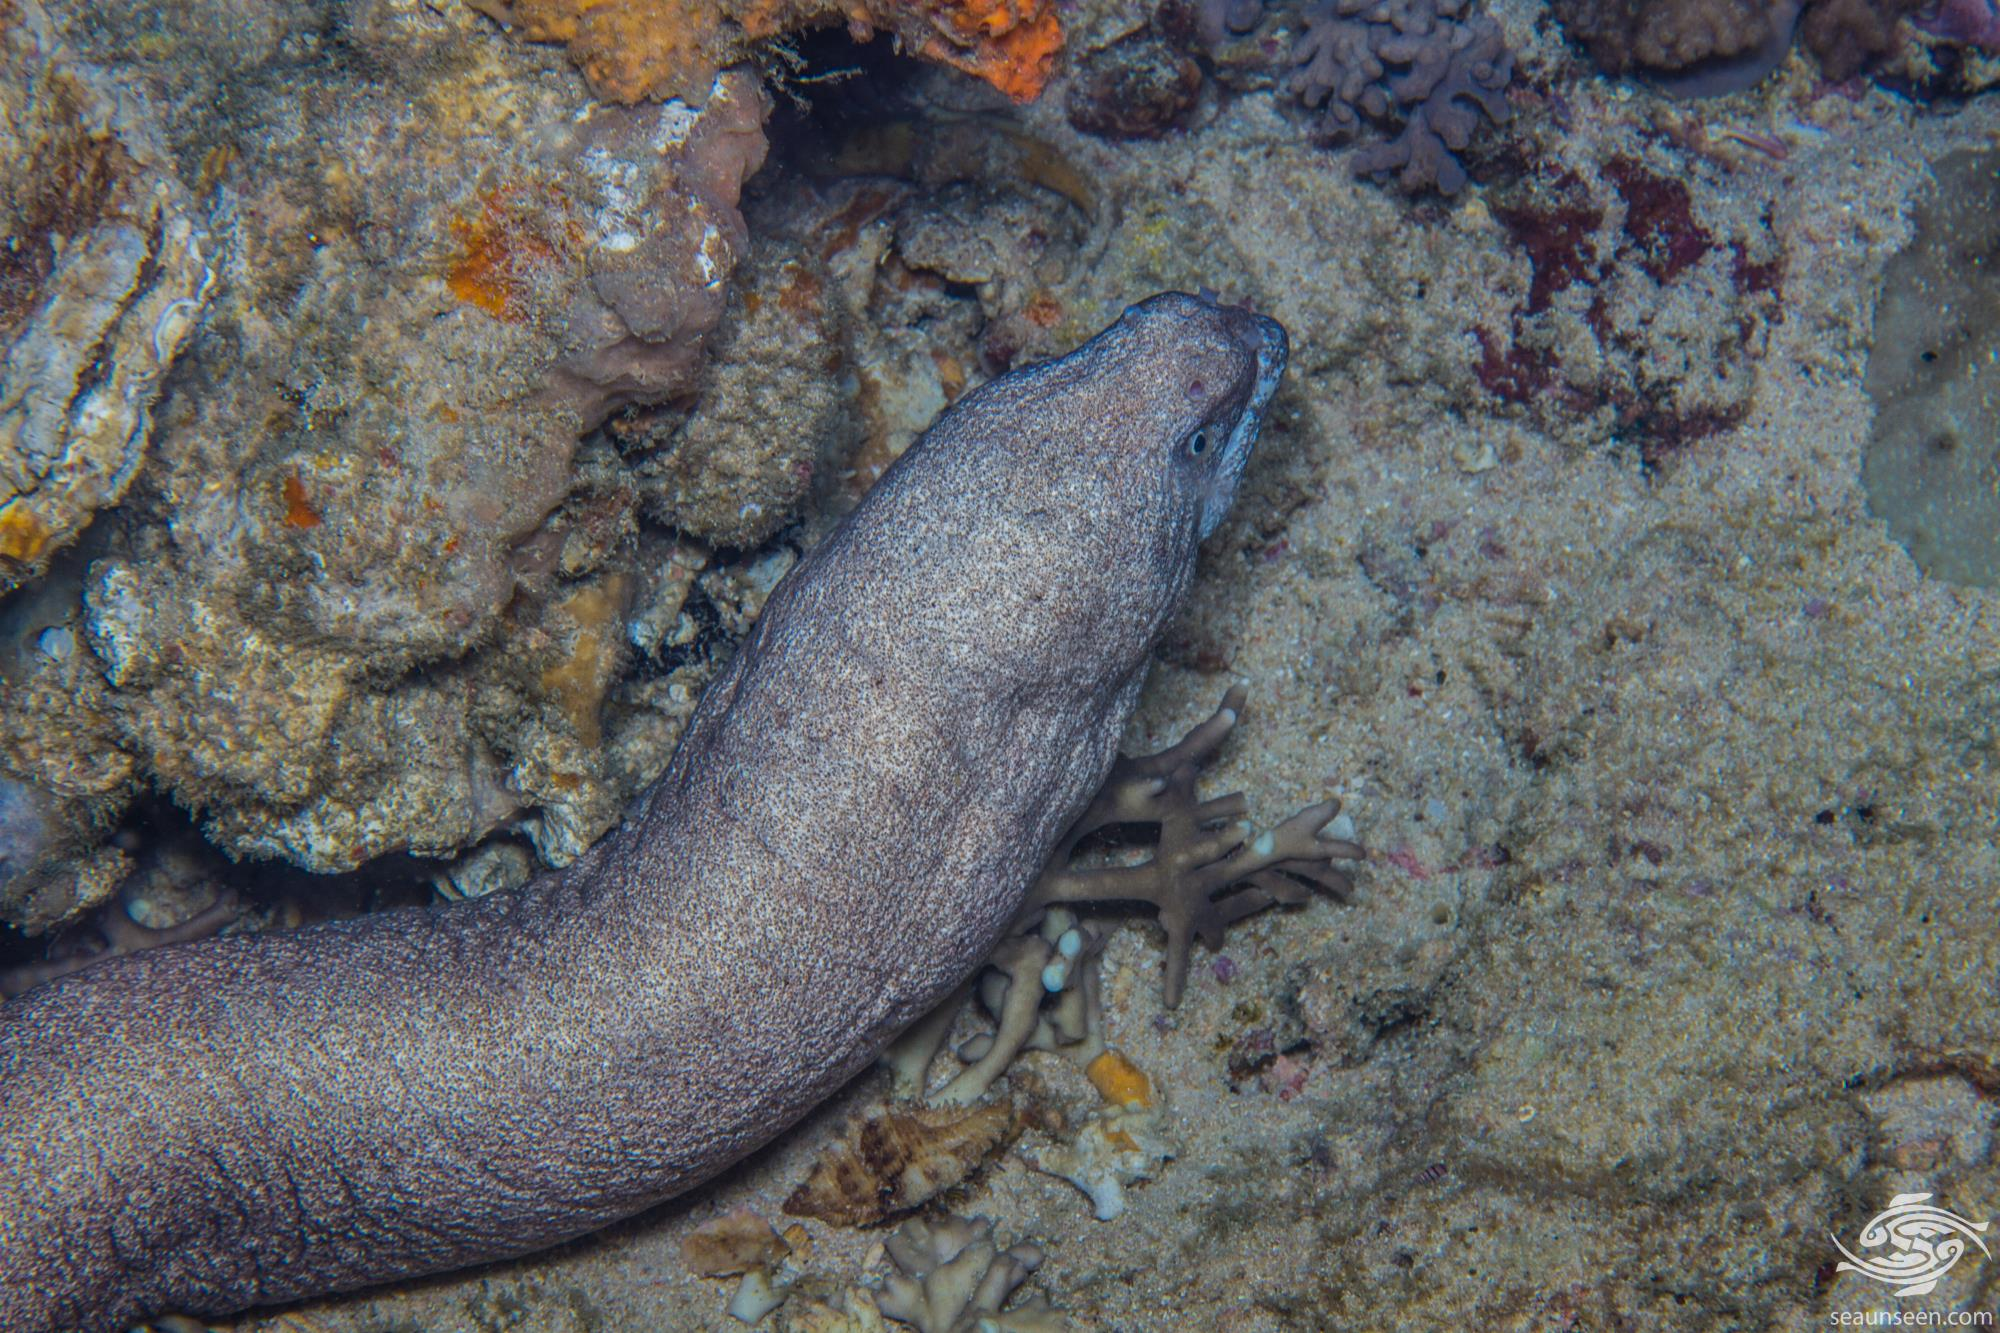 Unidentified species of Eel